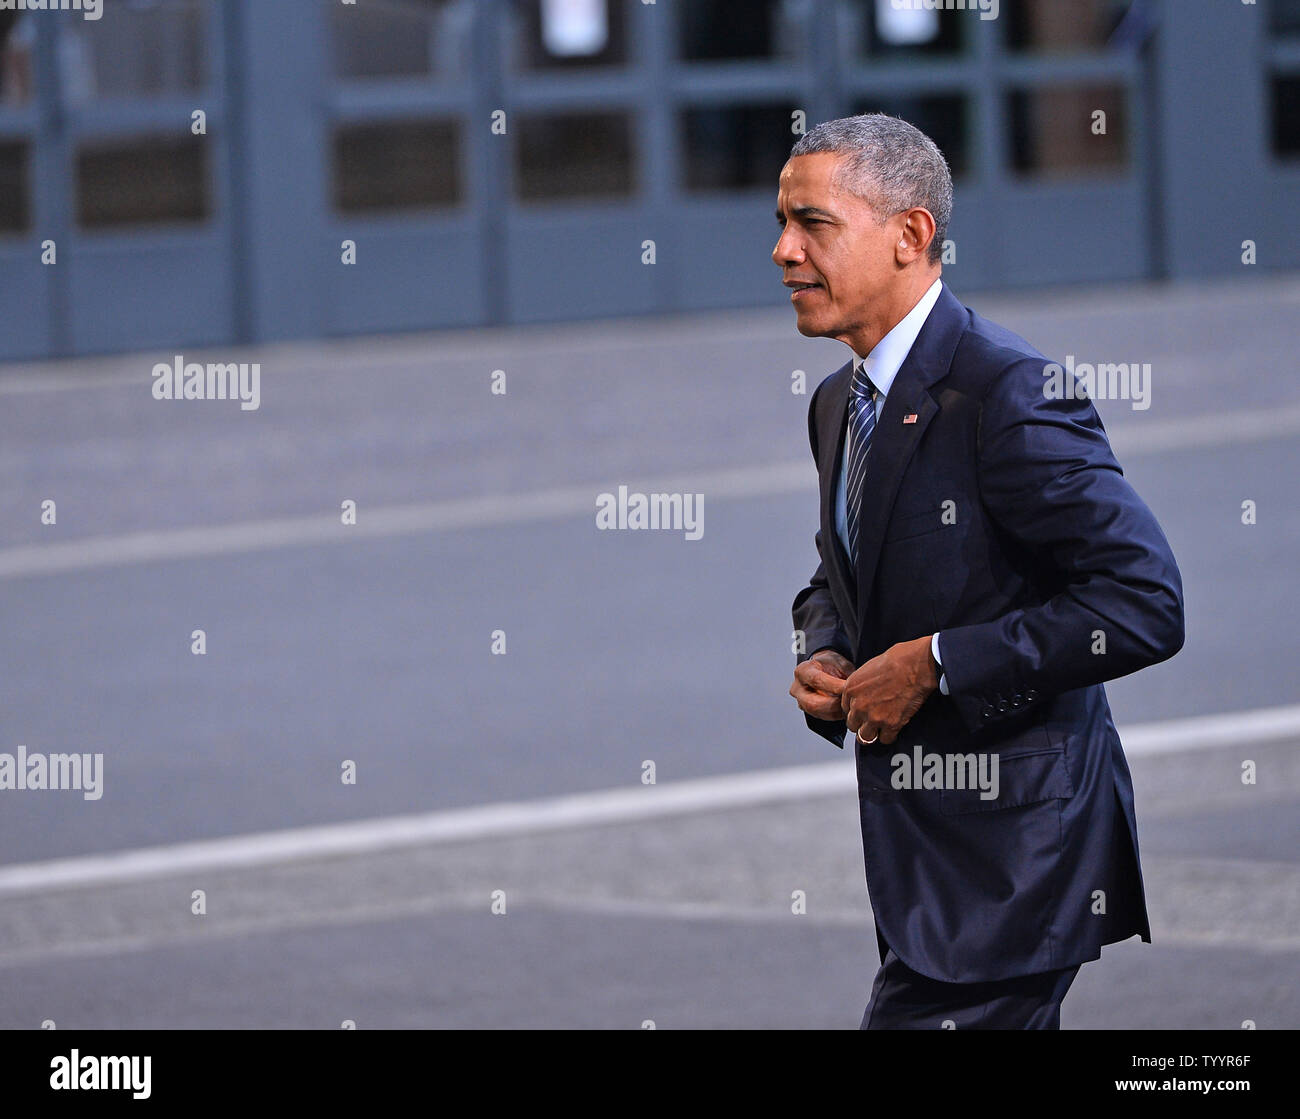 U.S. President Barack Obama arrives at the United Nation's 21st climate change conference at Le Bourget near Paris on November 30, 2015. The almost 150 heads of state and representatives from 200 countries in attendance will attempt to negotiate a legally binding agreement to limit worldwide carbon emissions with the goal of keeping global warming under 2 degrees Celsius.   Photo by David Silpa/UPI - Stock Image